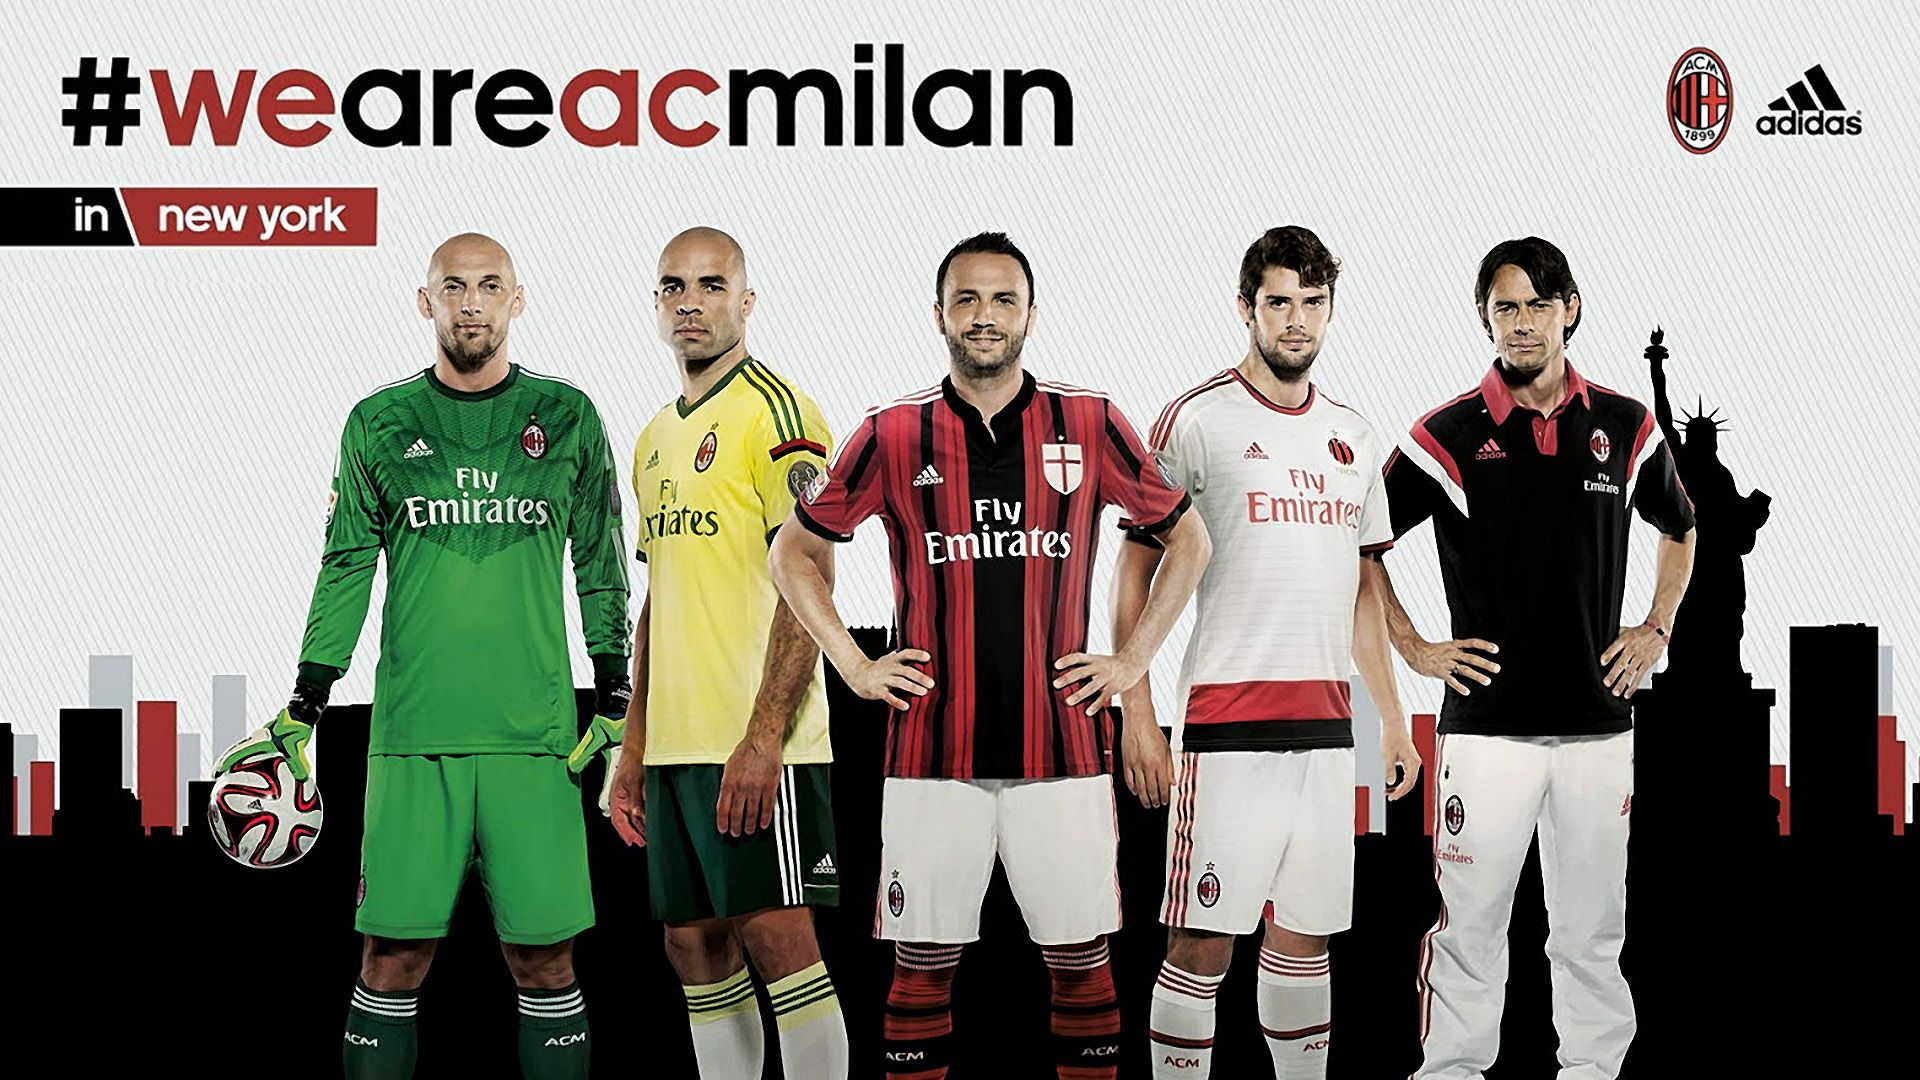 Wallpaper download free ac milan background pic wpd005991 download voltagebd Choice Image